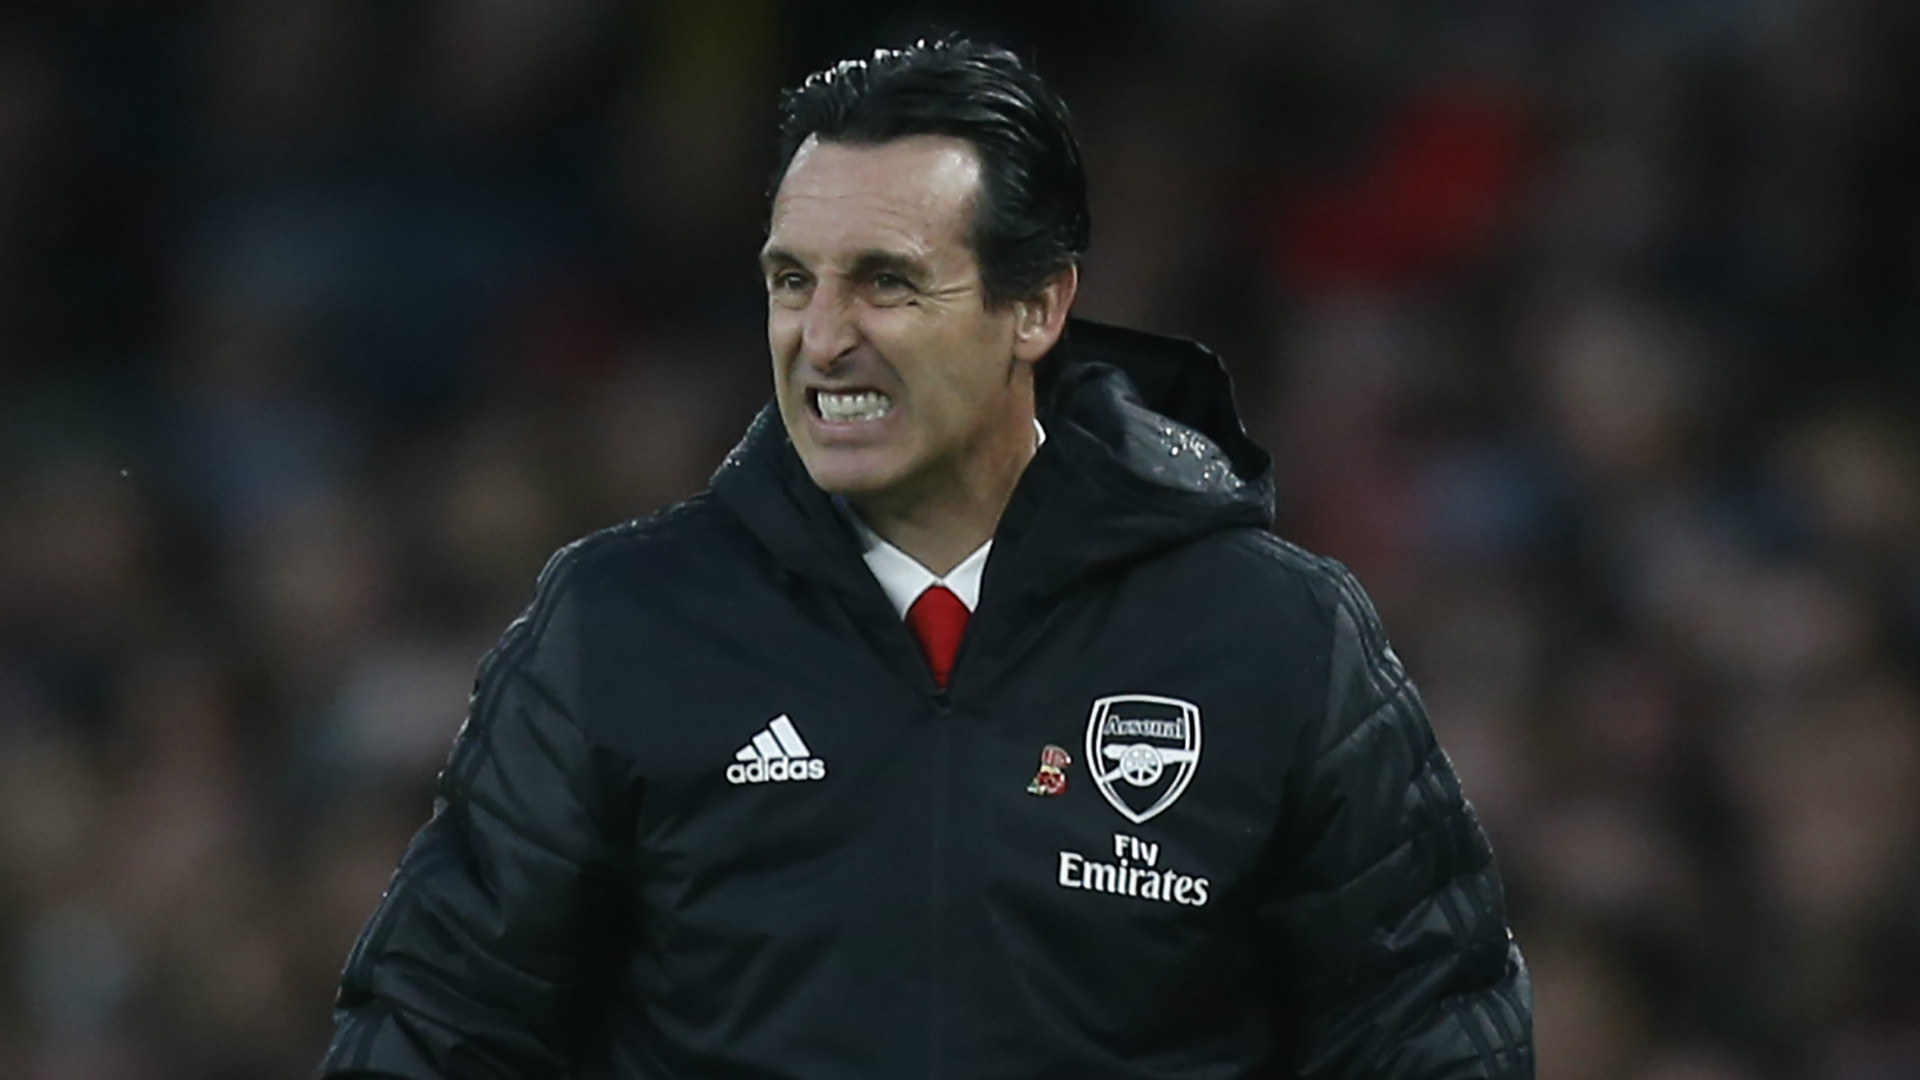 Arsenal lesson Emery must take from Wenger revealed by former Gunners star